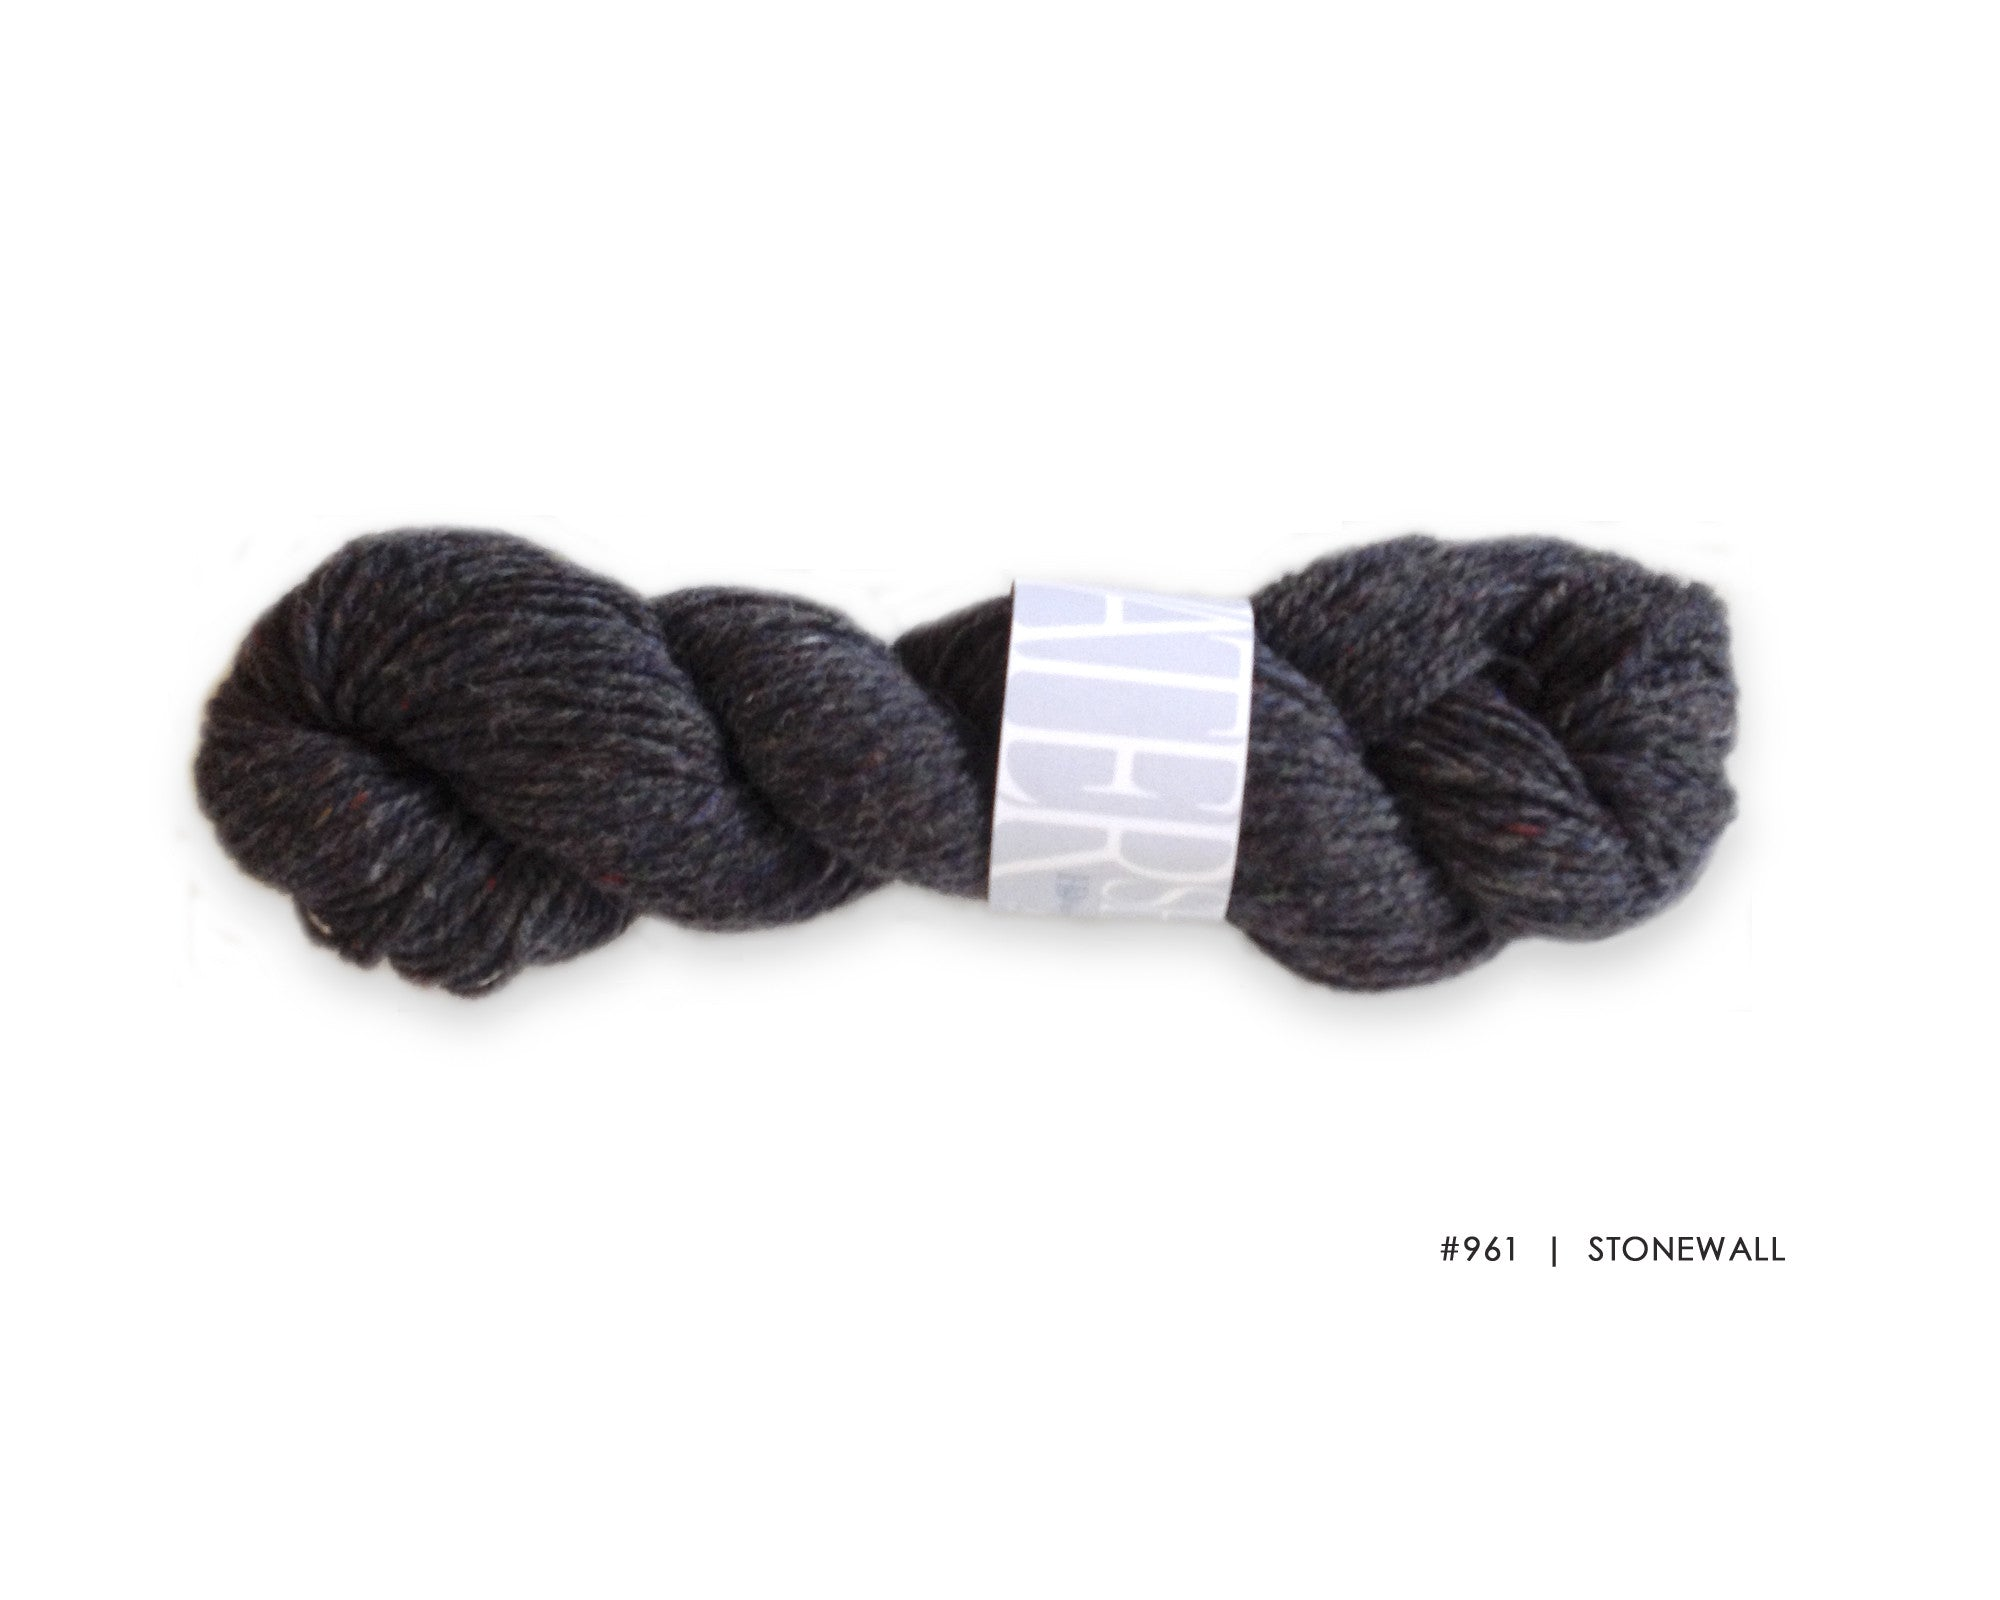 Watershed yarn from Harrisville Designs, worsted weight 100% wool. Soft spun, super heathered, super cushy! Stonewall